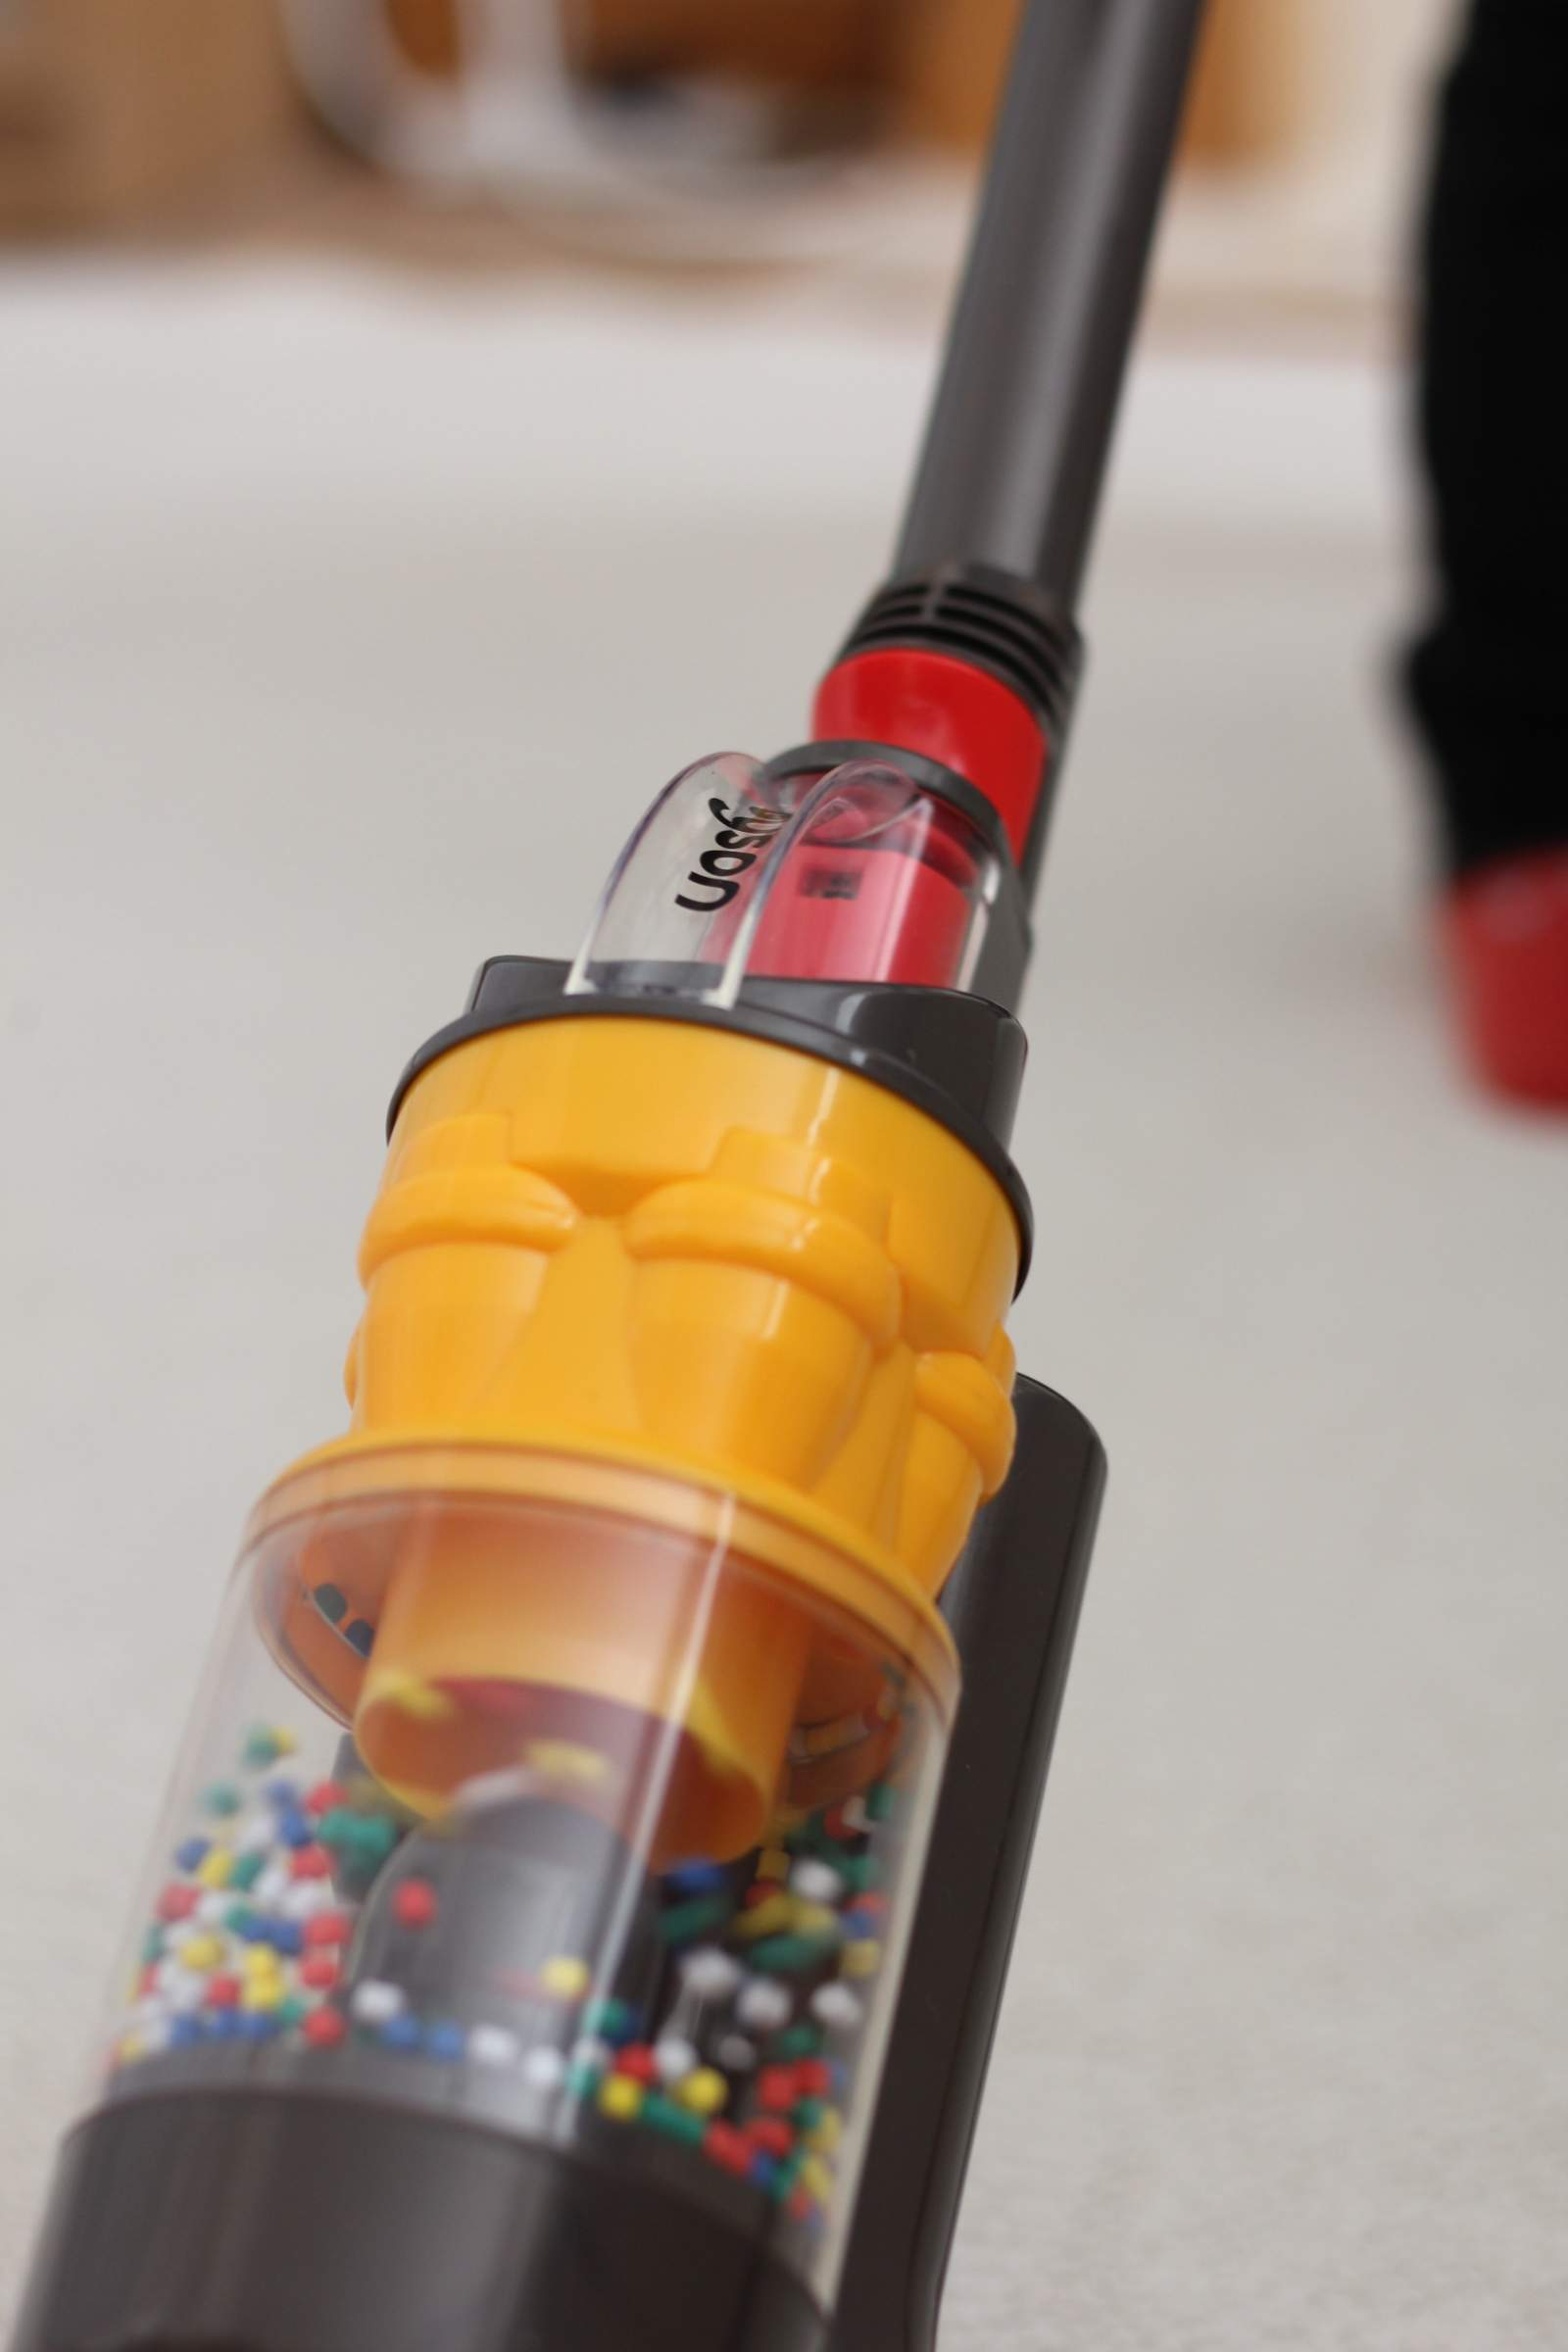 Role Play Spring Cleaning with Casdon Dyson Ball Vacuum